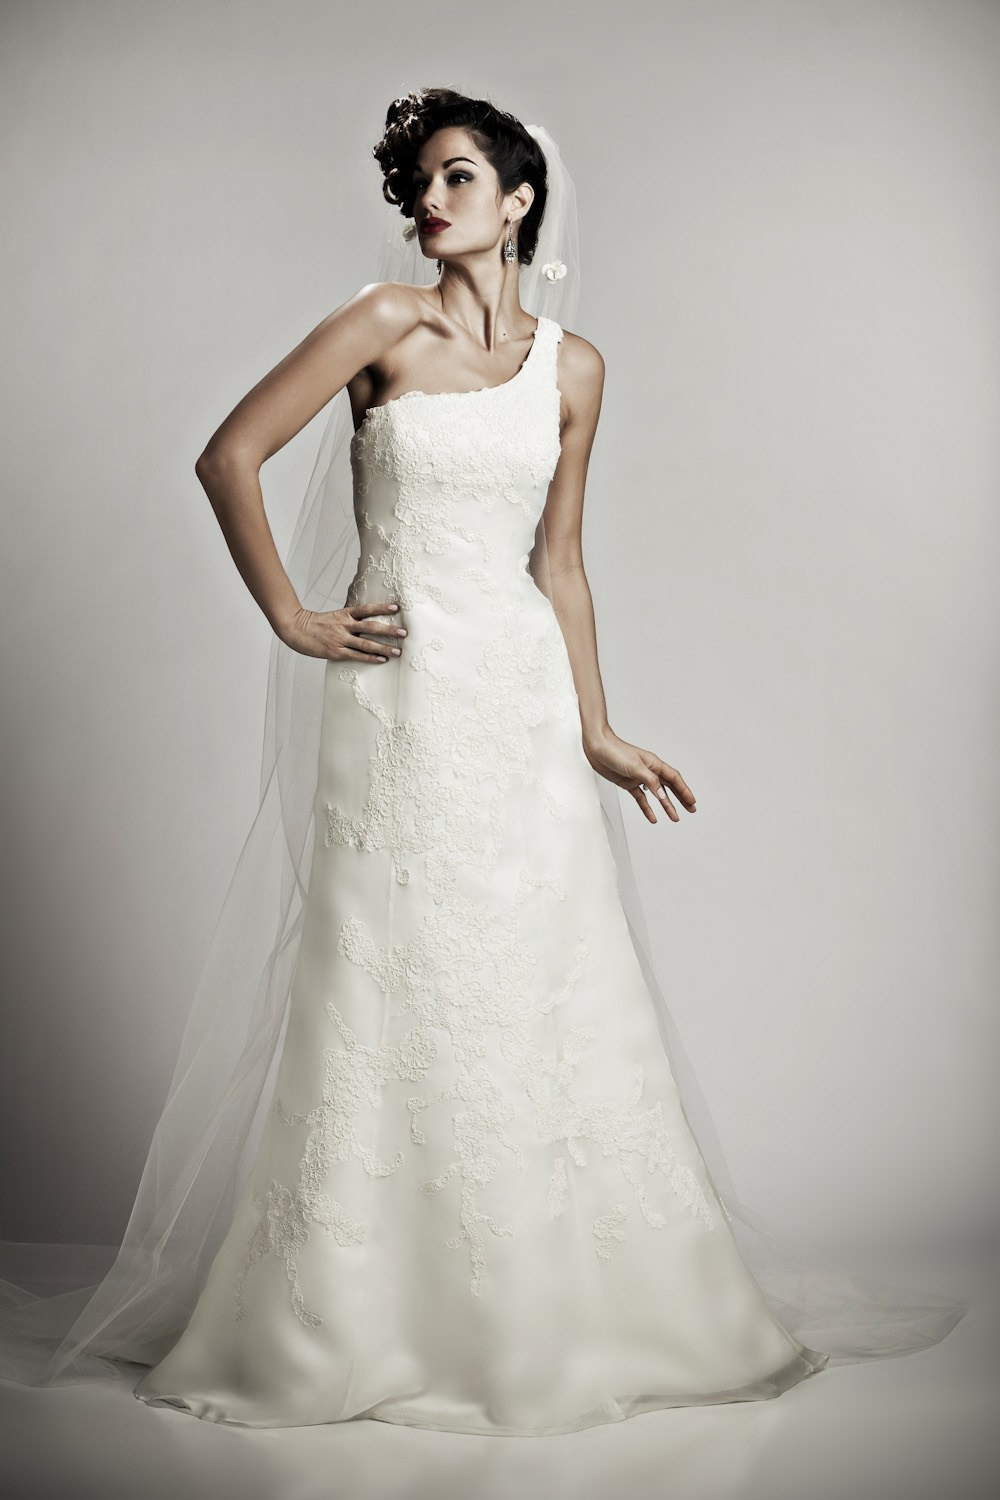 One-shoulder-wedding-dress-fit-and-flare-bridal-gown-lace-embellished.original